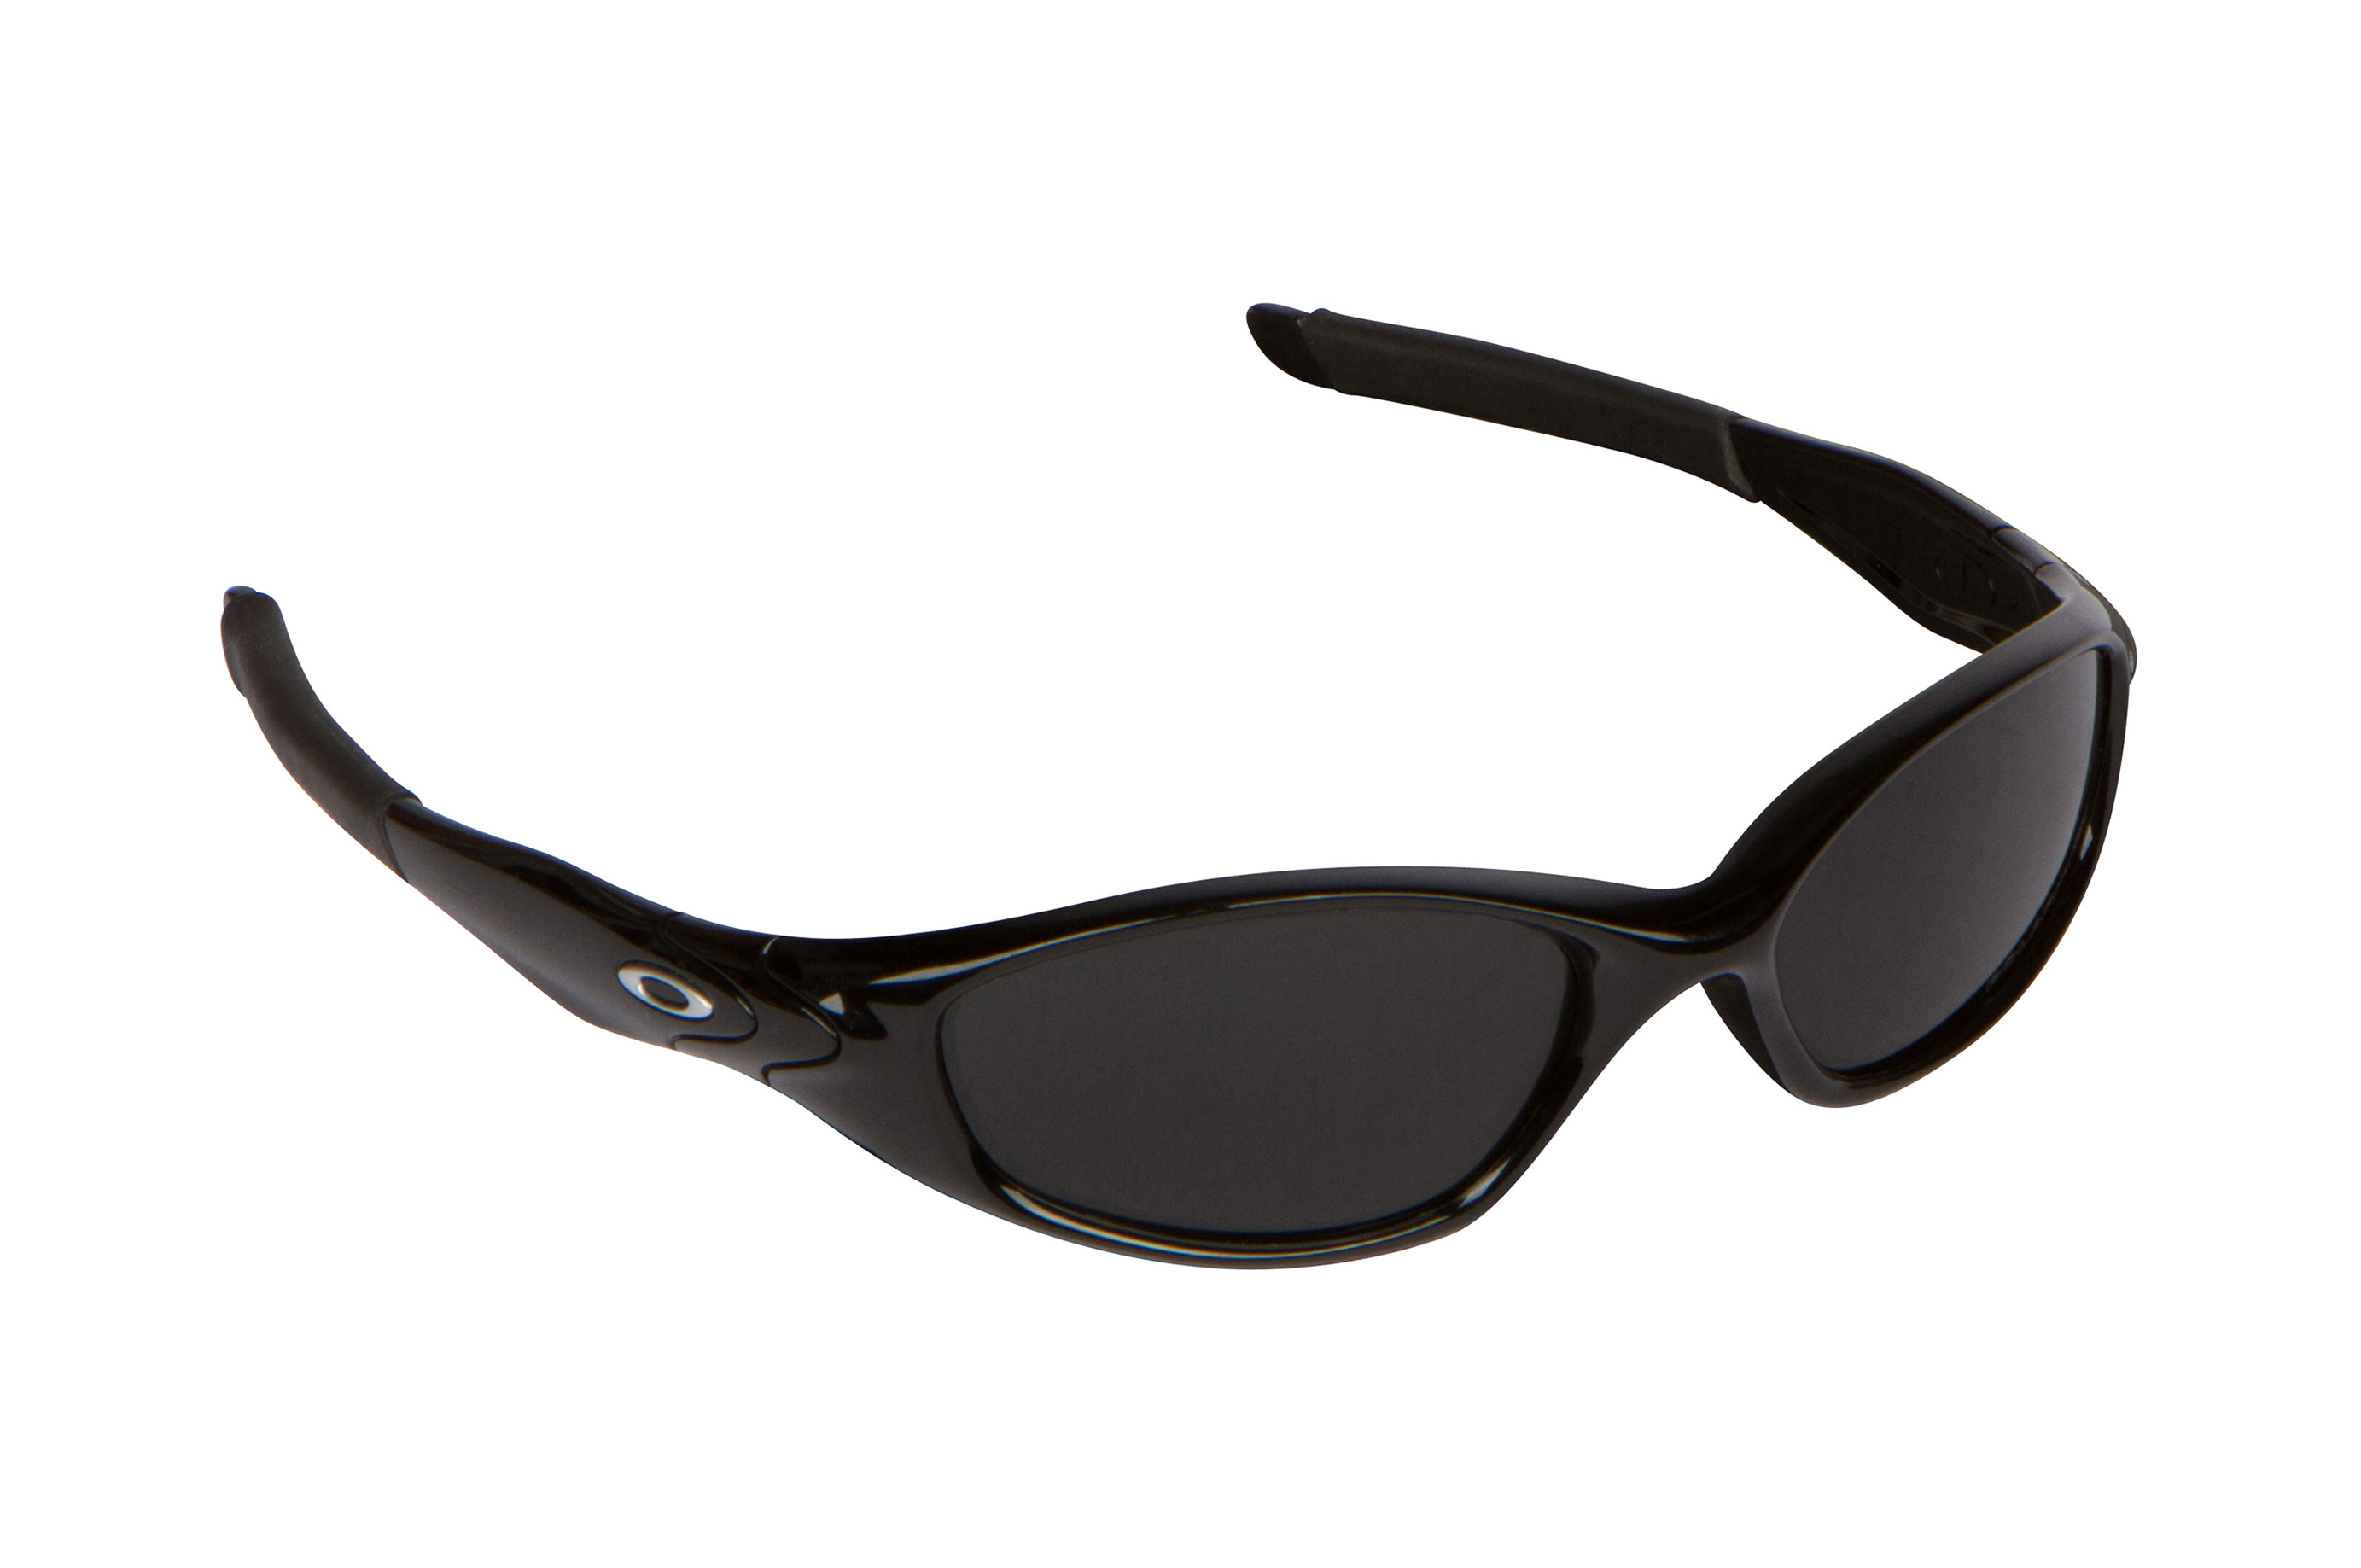 aafd3b8a930 Replacing Oakley Minute Lenses « Heritage Malta